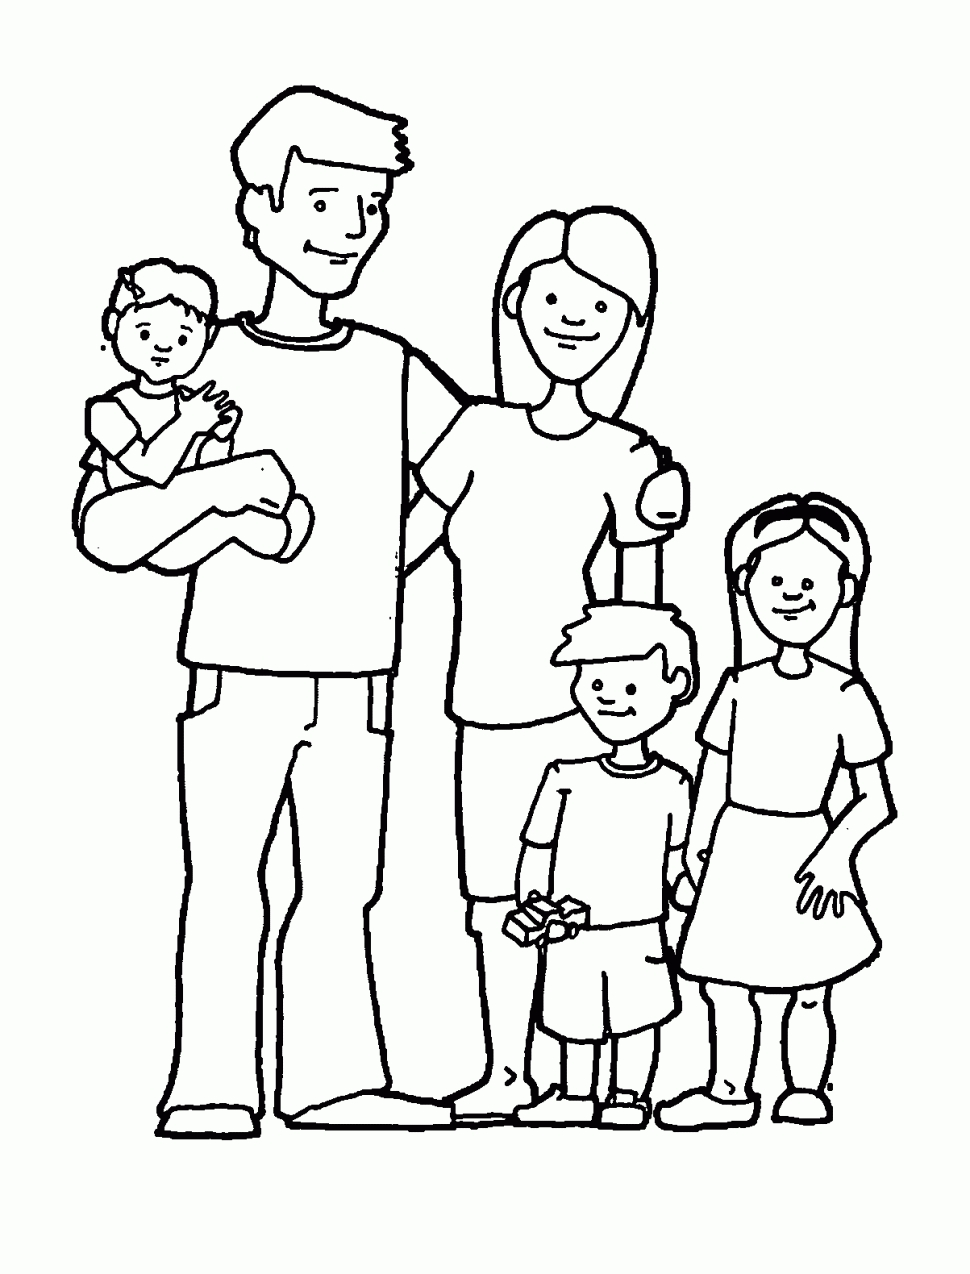 coloring family picture family coloring pages coloring kids coloring kids coloring picture family